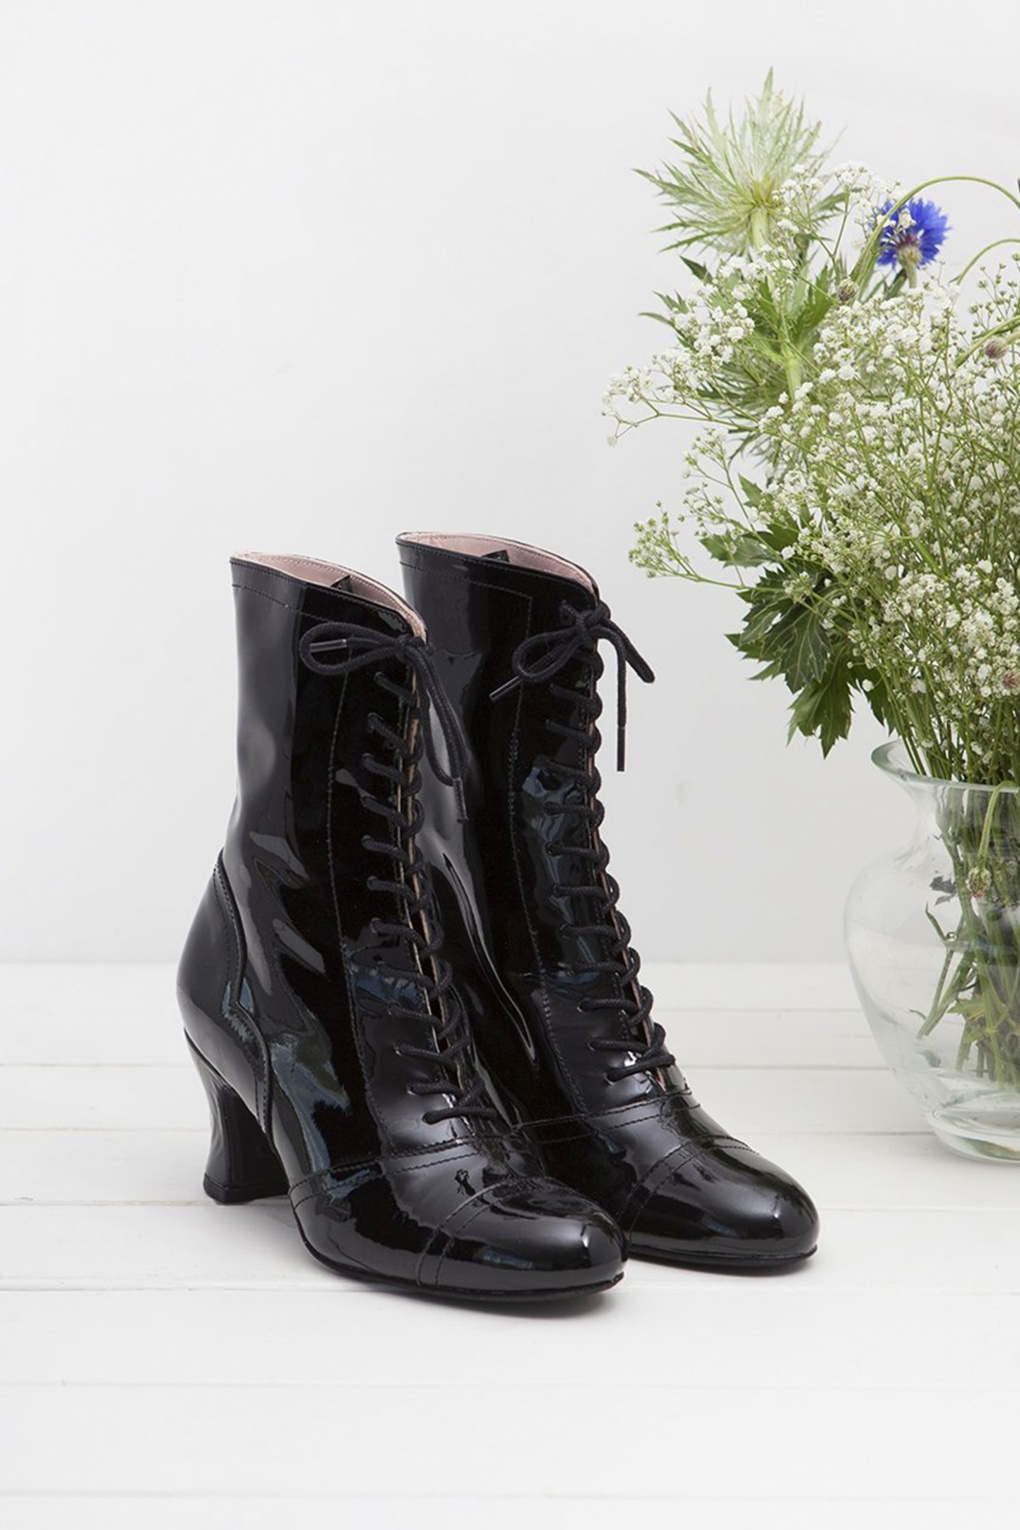 Vintage Style Shoes, Vintage Inspired Shoes Frida Lace Up Booties in Patent Black £170.39 AT vintagedancer.com